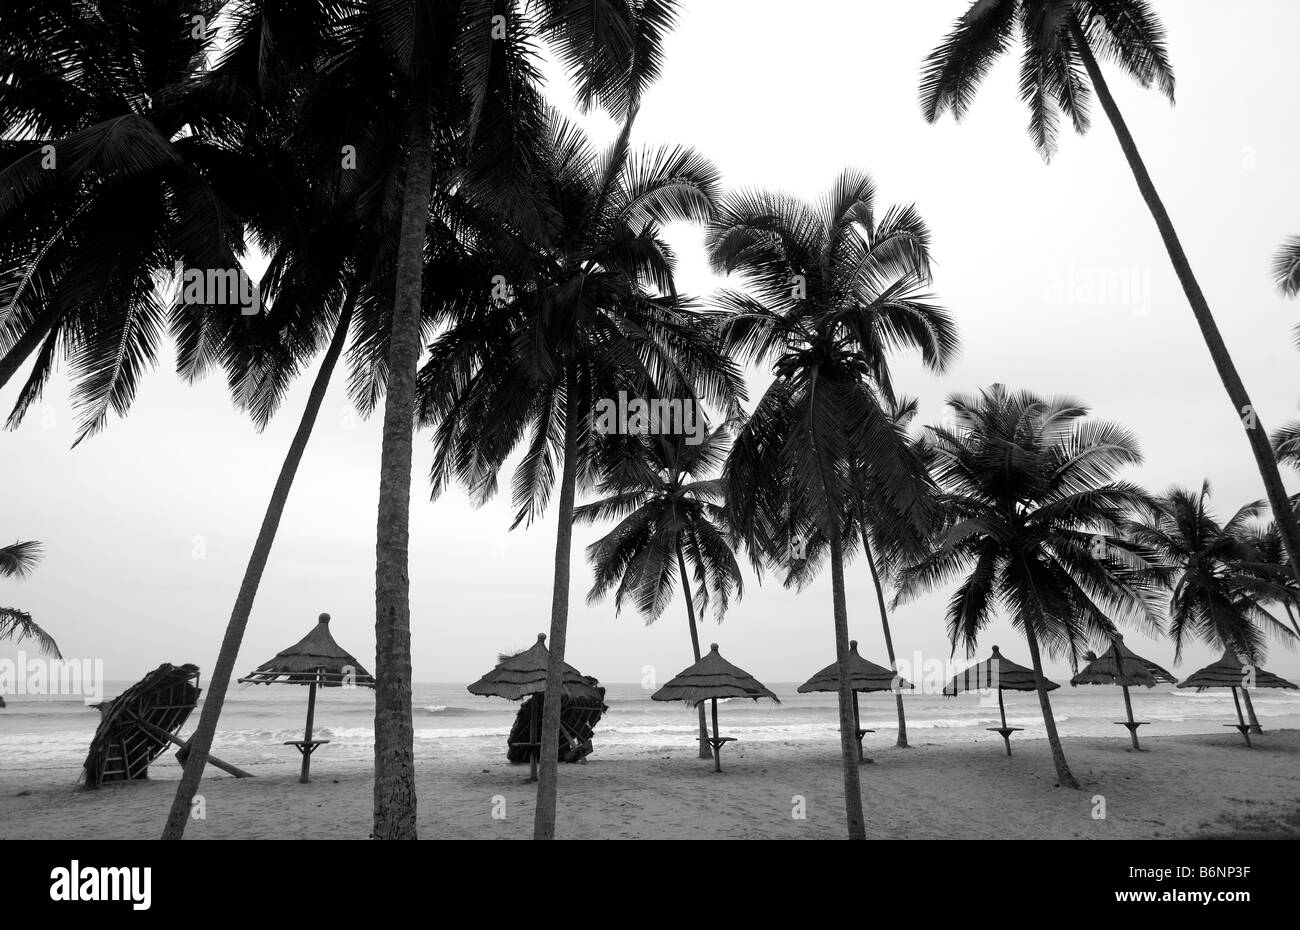 Ghana, West Coast. White Sands beach, Coconut trees. - Stock Image